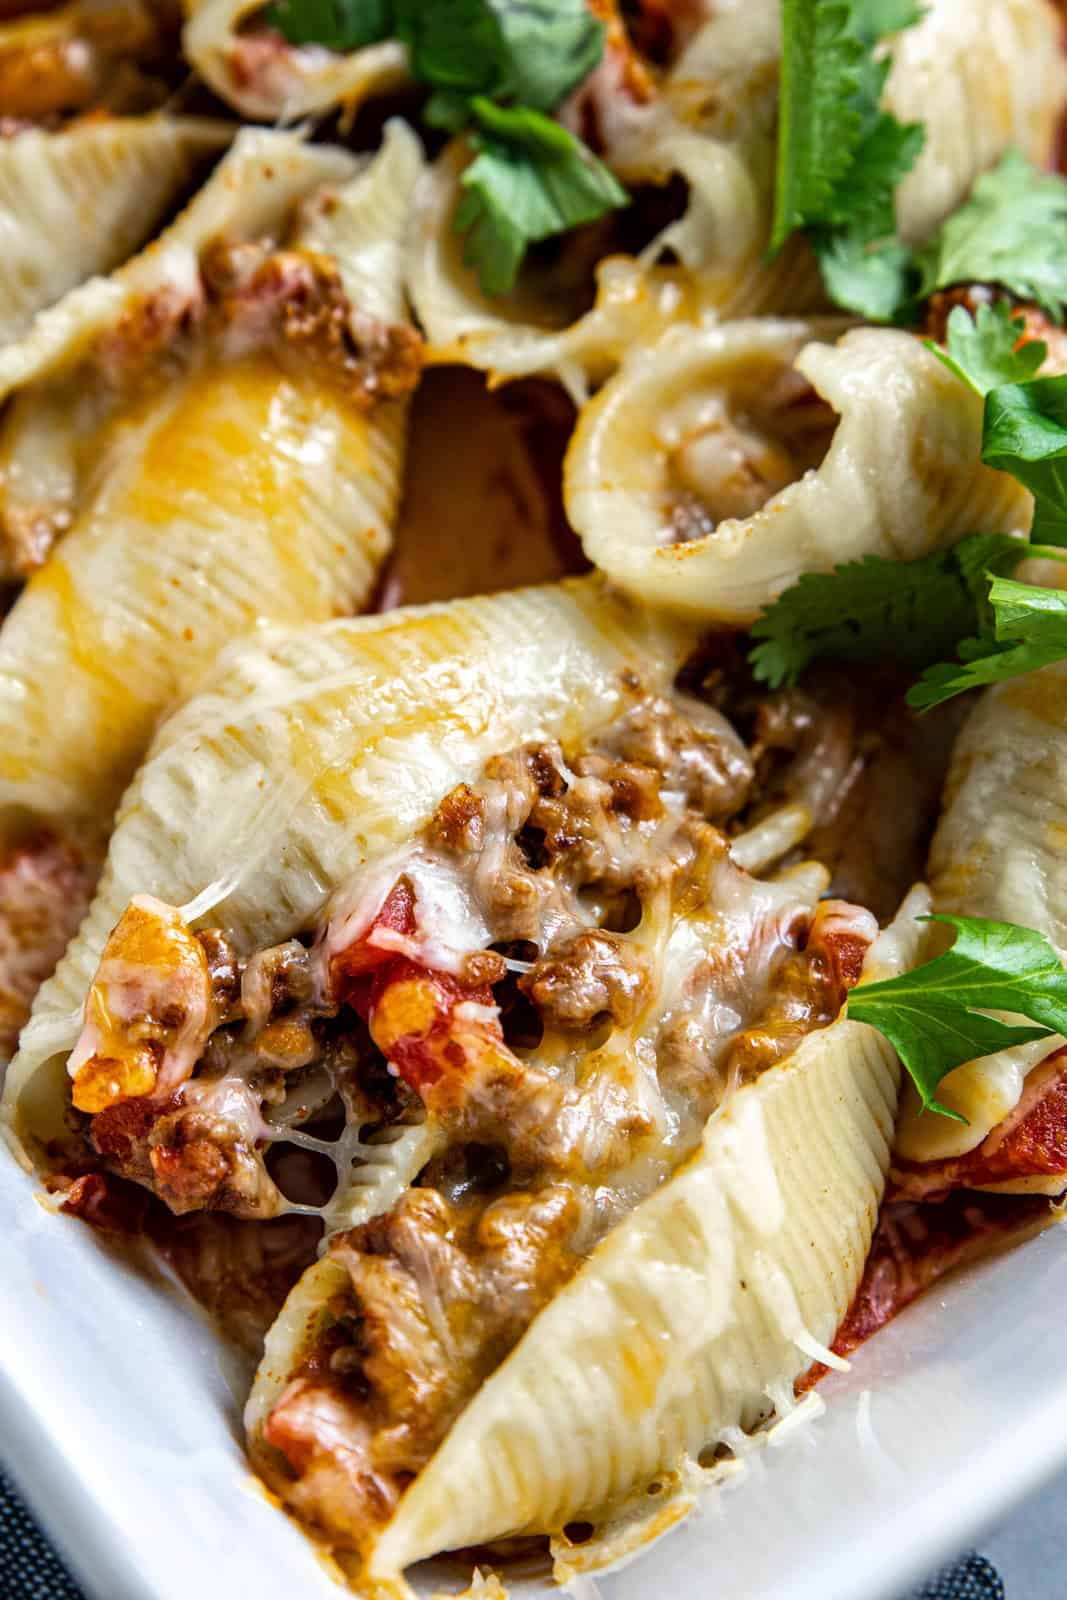 Mexican stuffed shells baked in a white casserole dish.